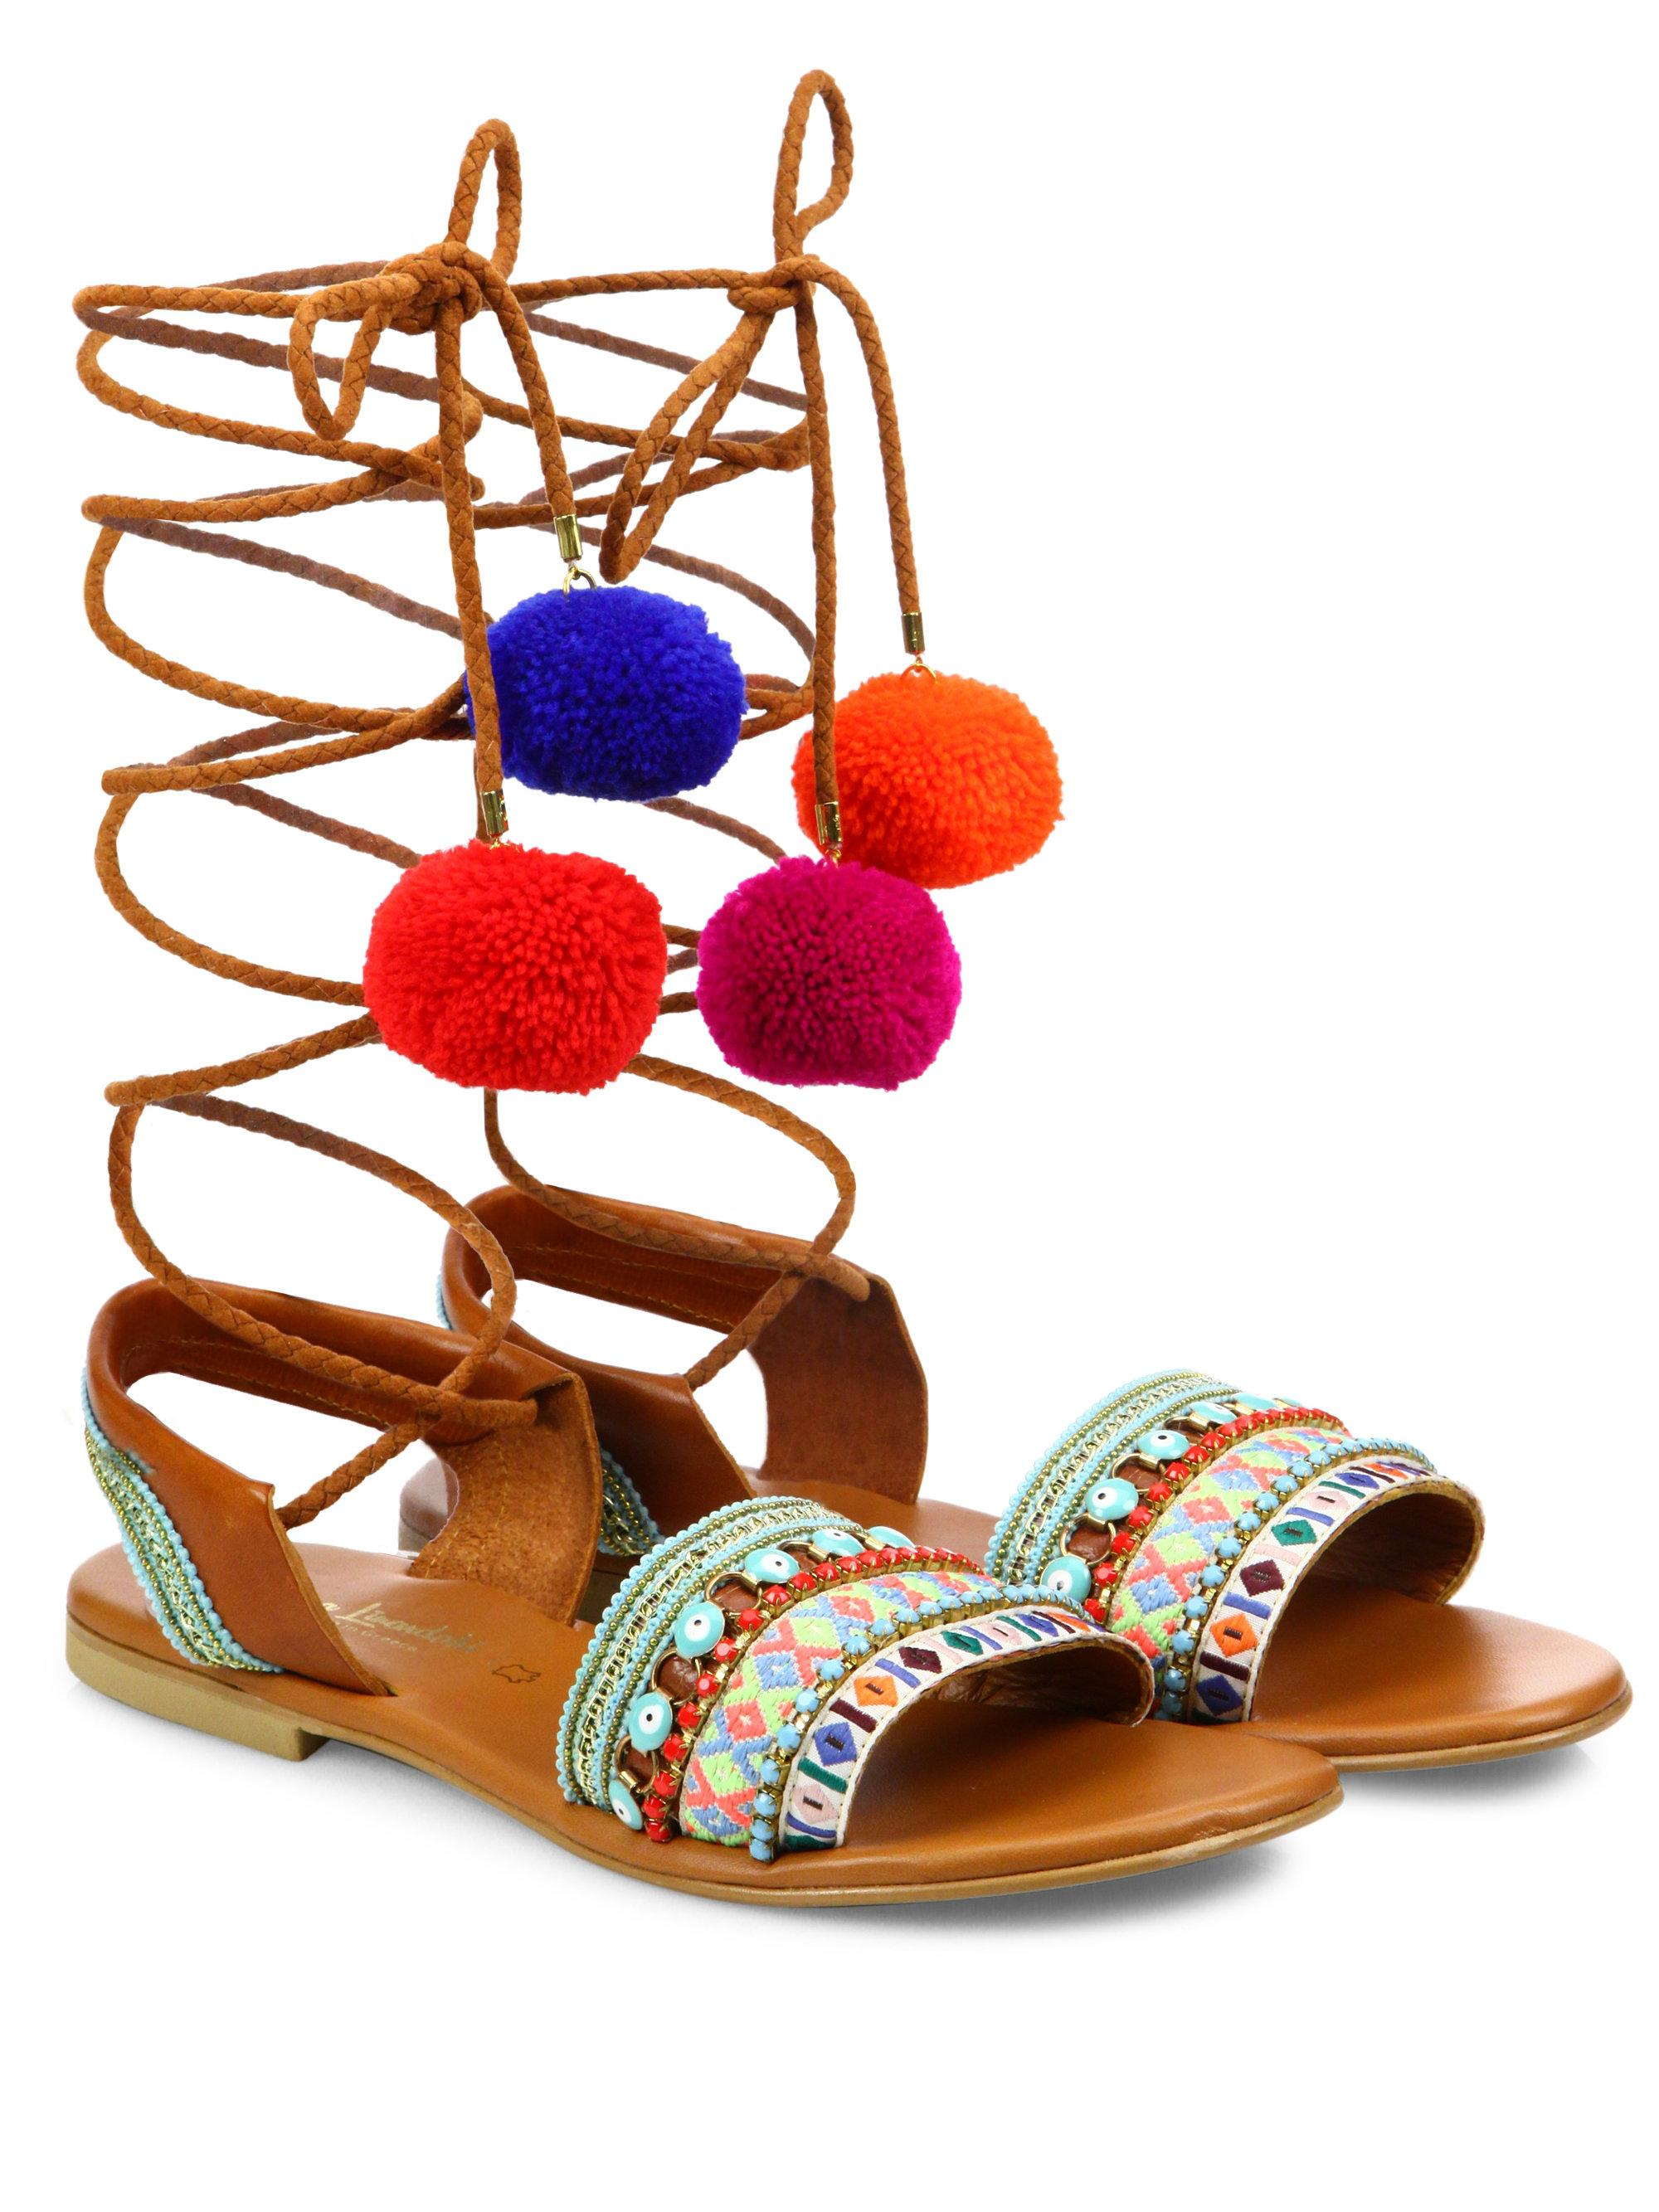 Elina Linardaki L.A. Lover Embroidered Leather High-Wrap Sandals bD3Fqj